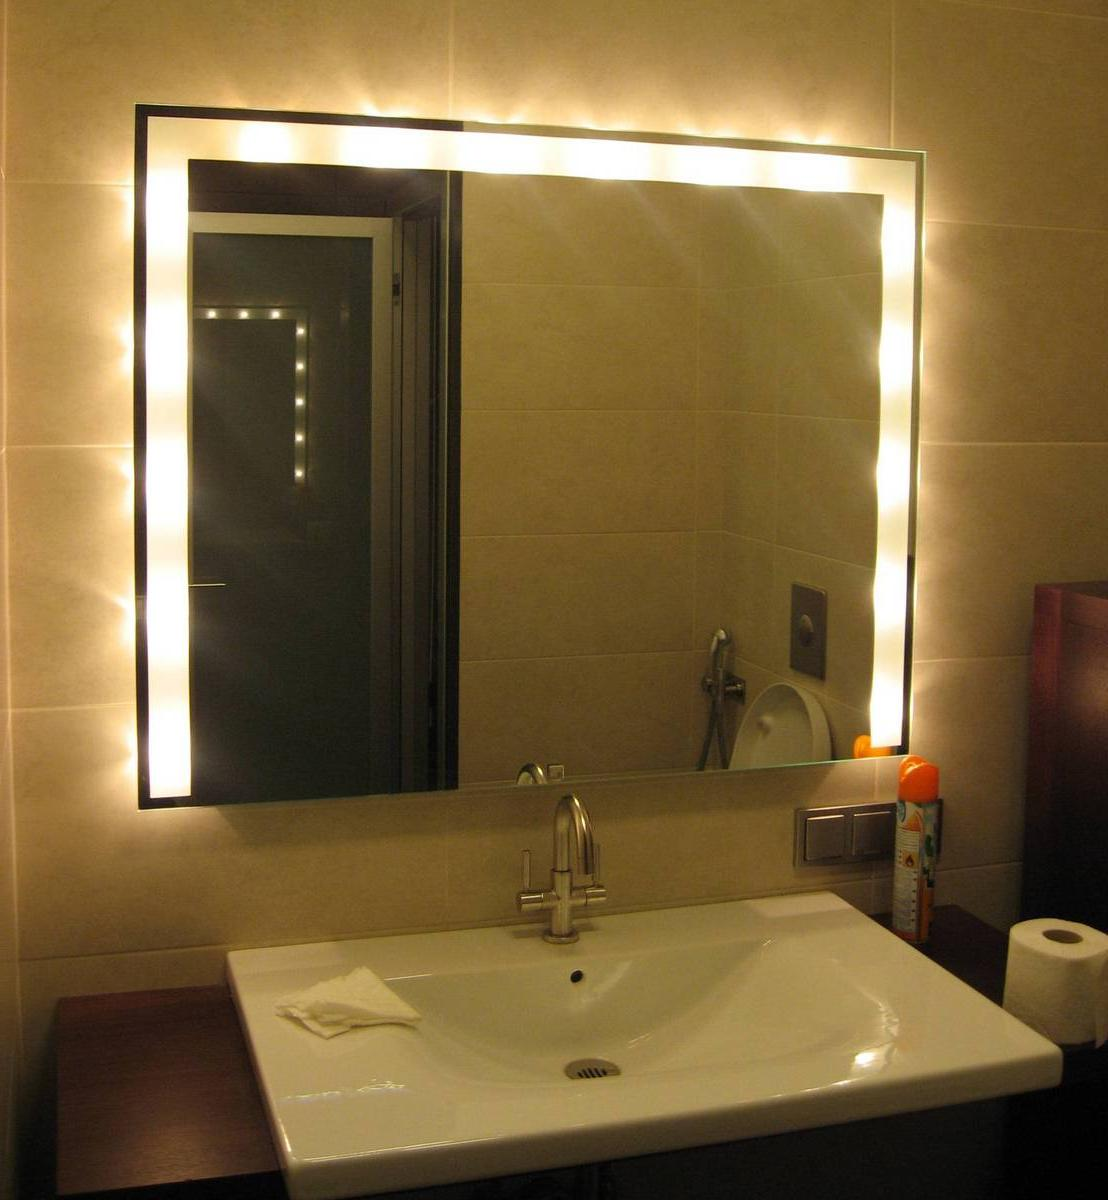 Amazing Bathroom Led Lighting Design Behind Square Mirror